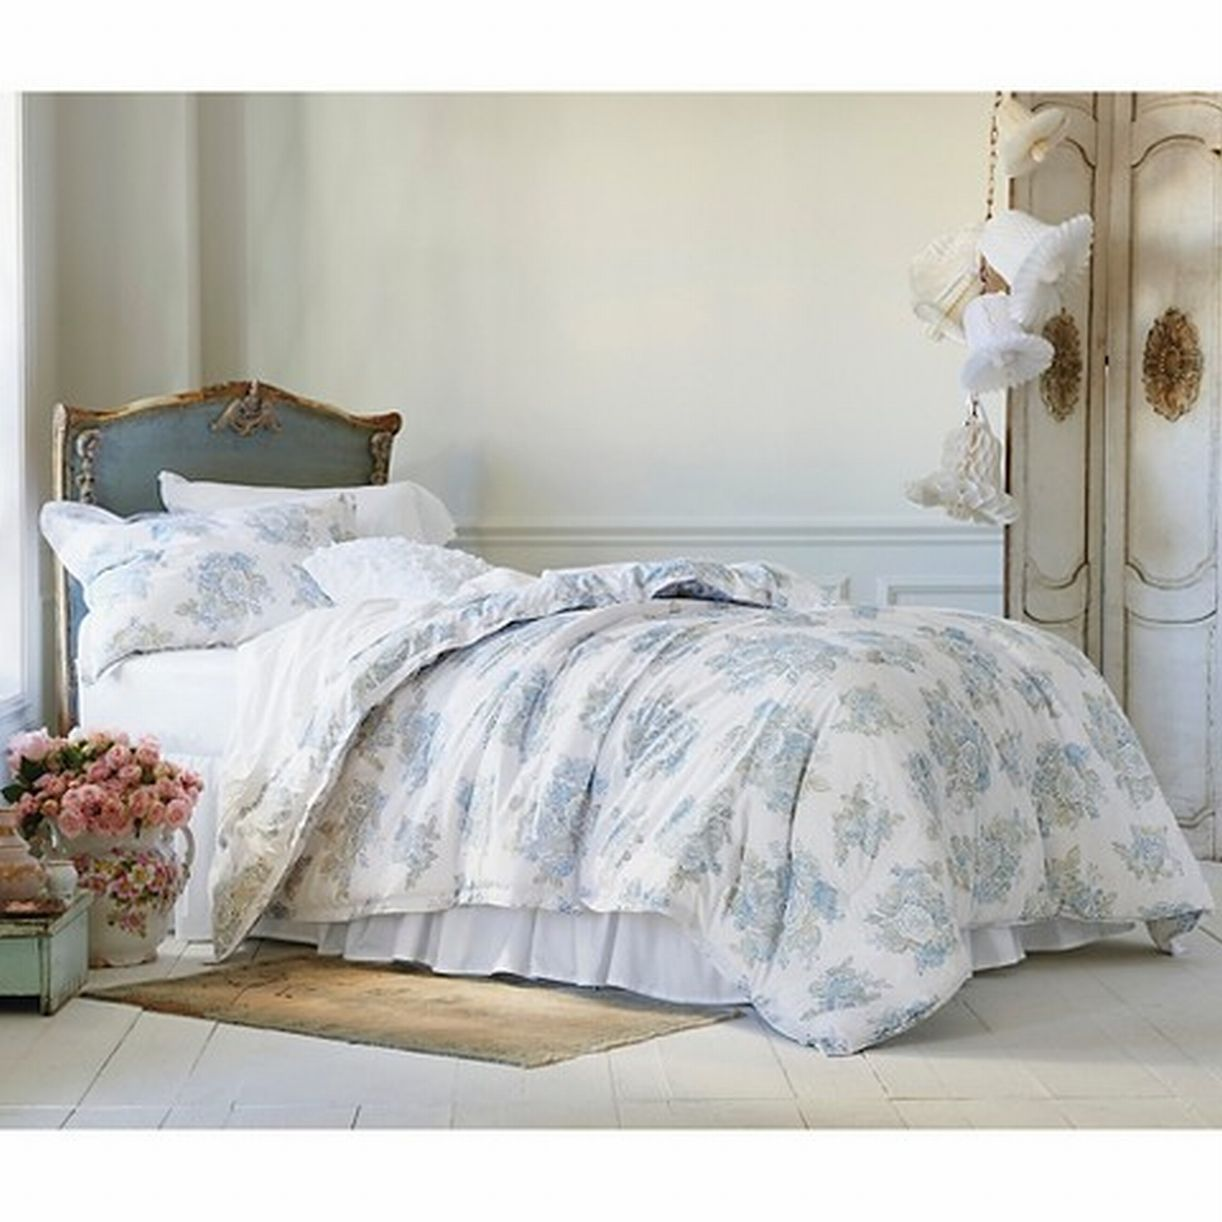 Phenomenal Simply Shabby Chic King Bed Comforter Shams Set Pretty Blue Floral 3 Pc Download Free Architecture Designs Scobabritishbridgeorg